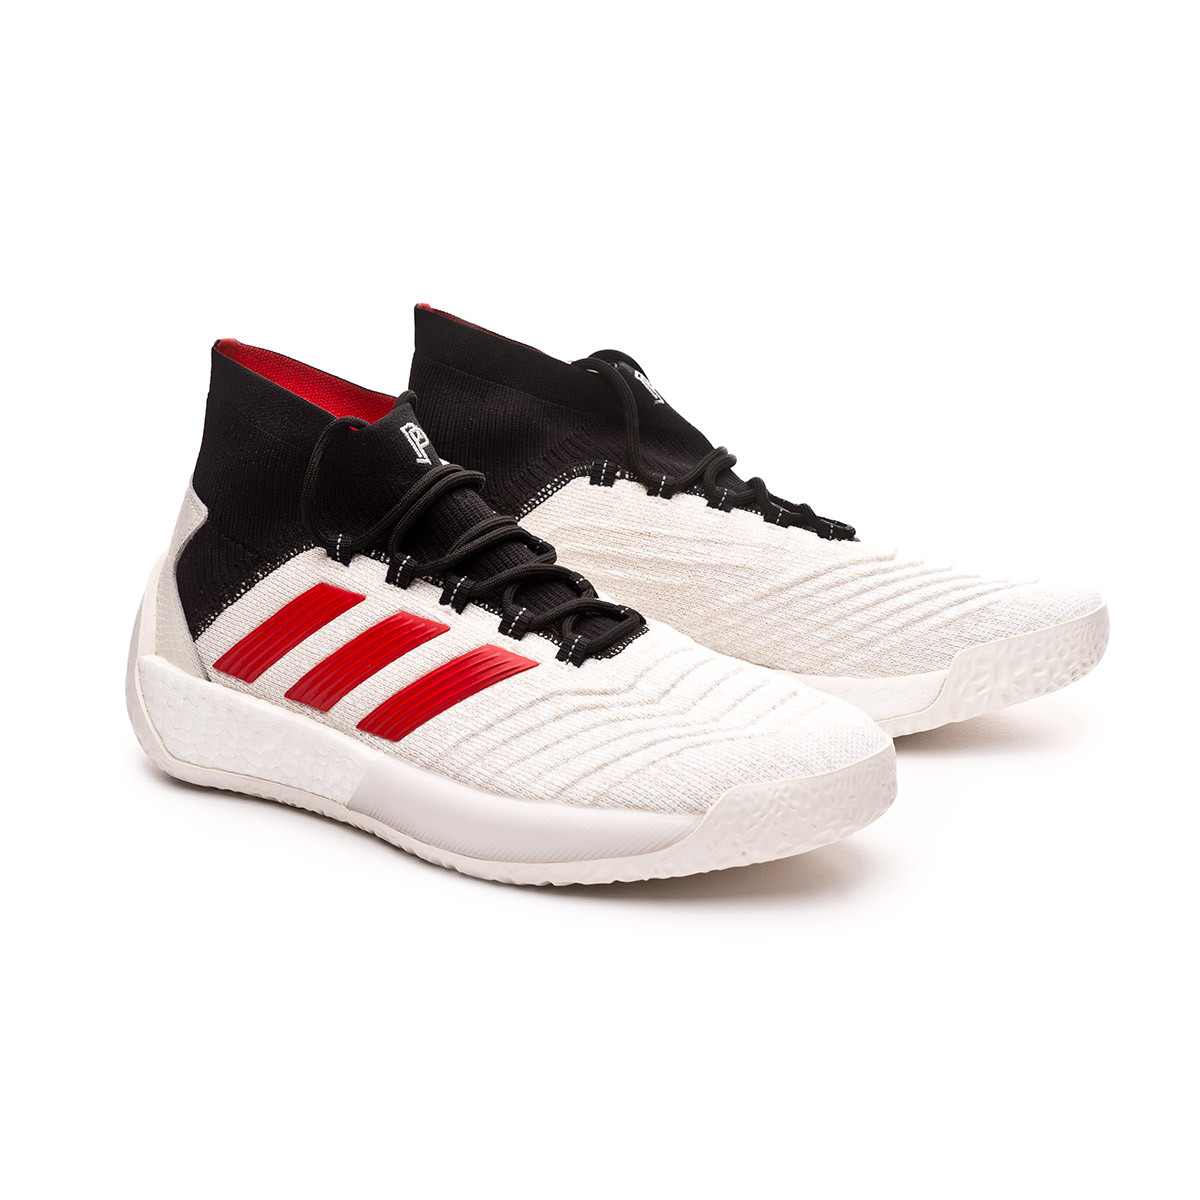 White Core 19Tr Red Pogba Paul Zapatilla Black Predator vN0Omn8w